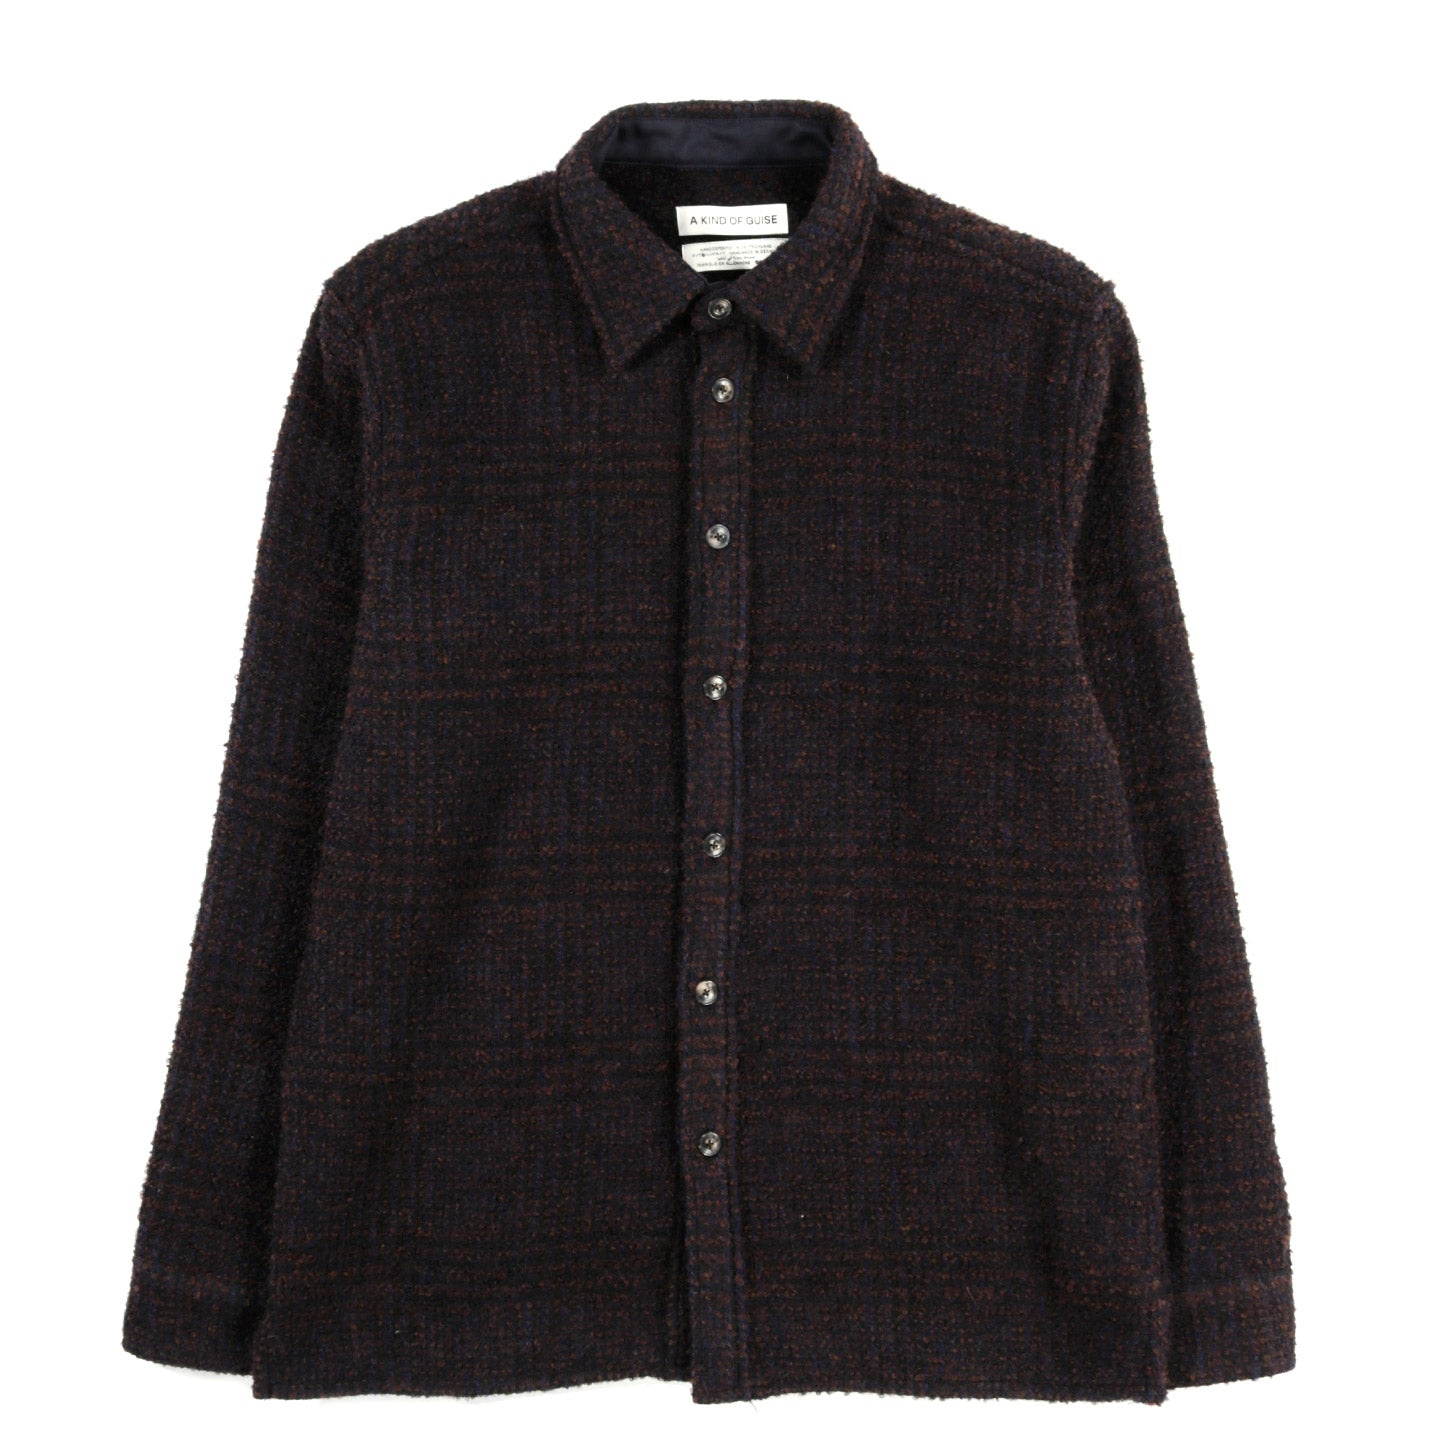 A KIND OF GUISE DULLU OVERSHIRT RUSTY NAVY